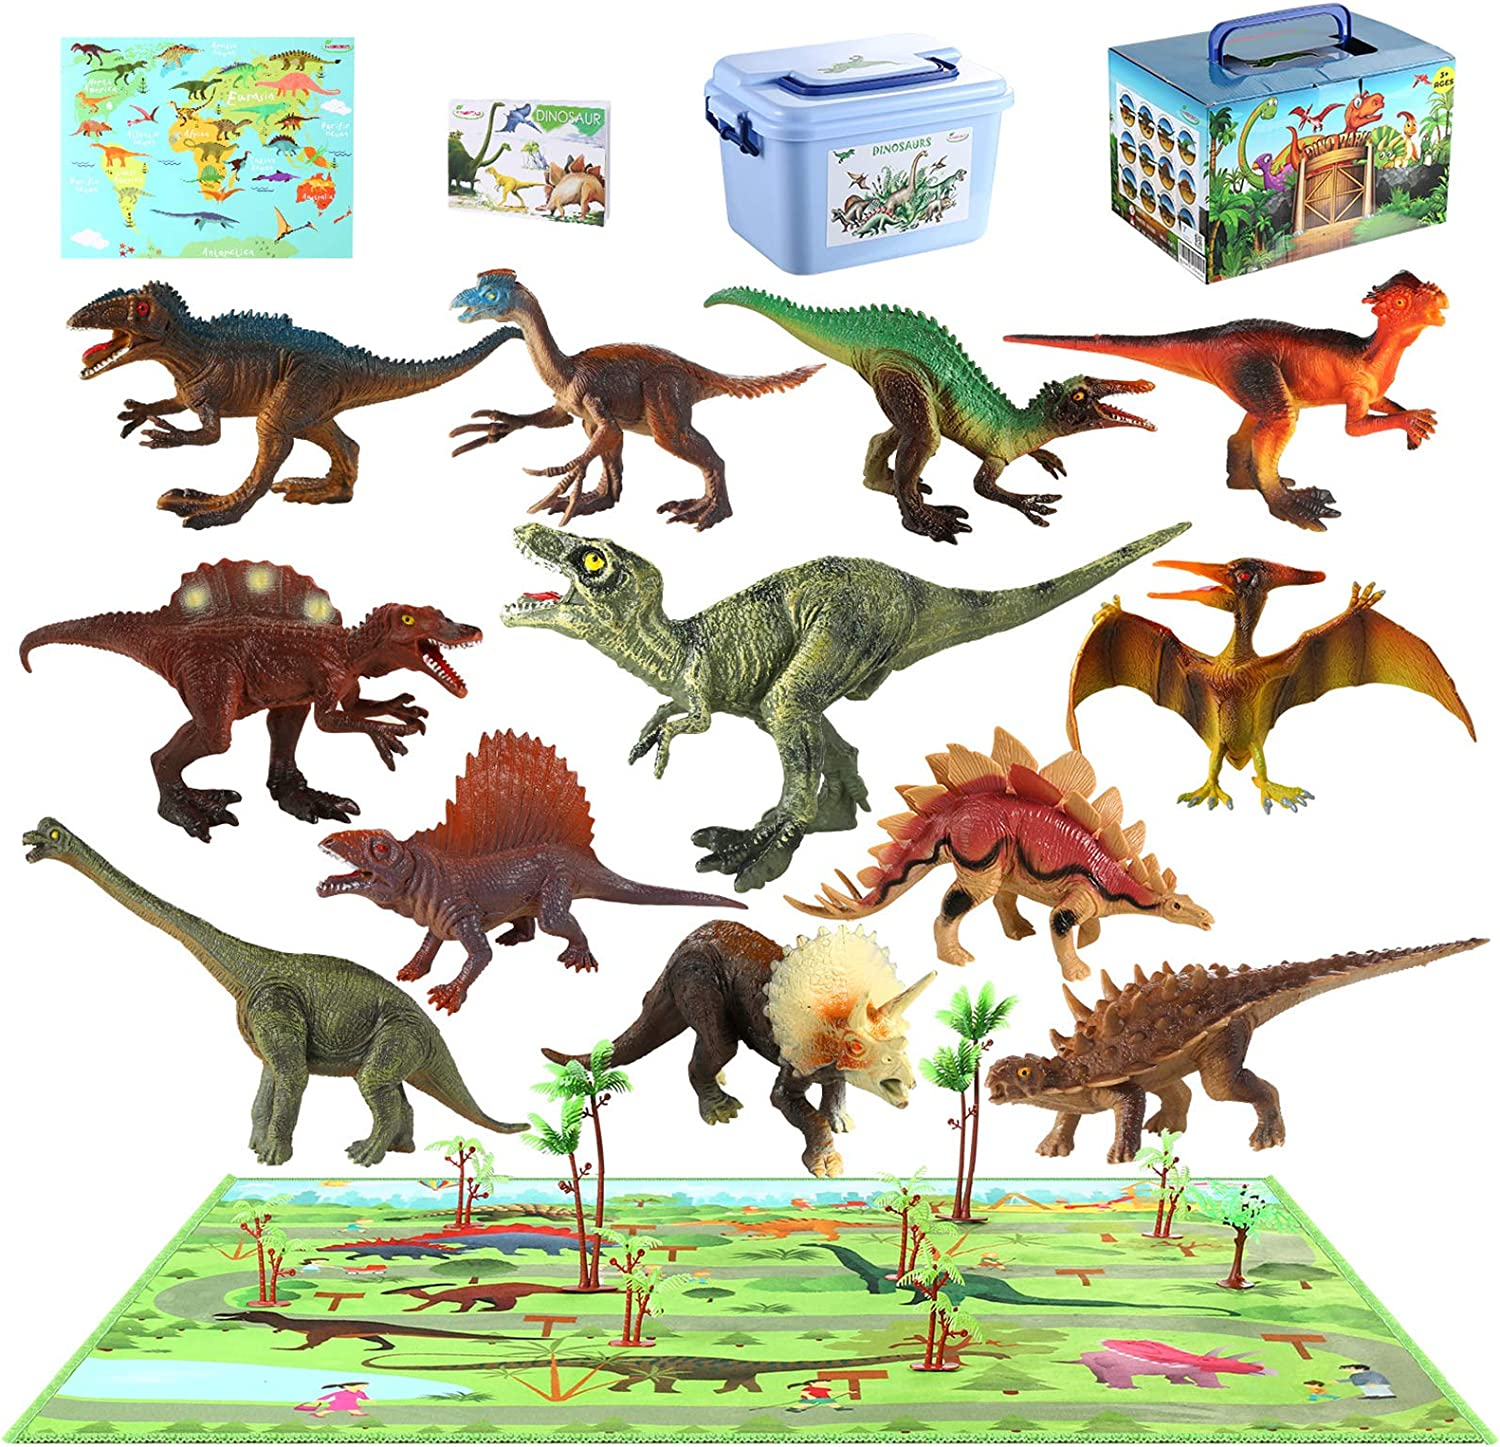 MEIGO Dinosaur Toys - Toddlers 7'' Educational Realistic Dinosaur Figures w/ 31.5''x31.5'' Activity Play Mat | Dino Book & Map | Preschool Learning Gift for Kids 3 4 5 6 Year Old Boys Girls (12pcs)